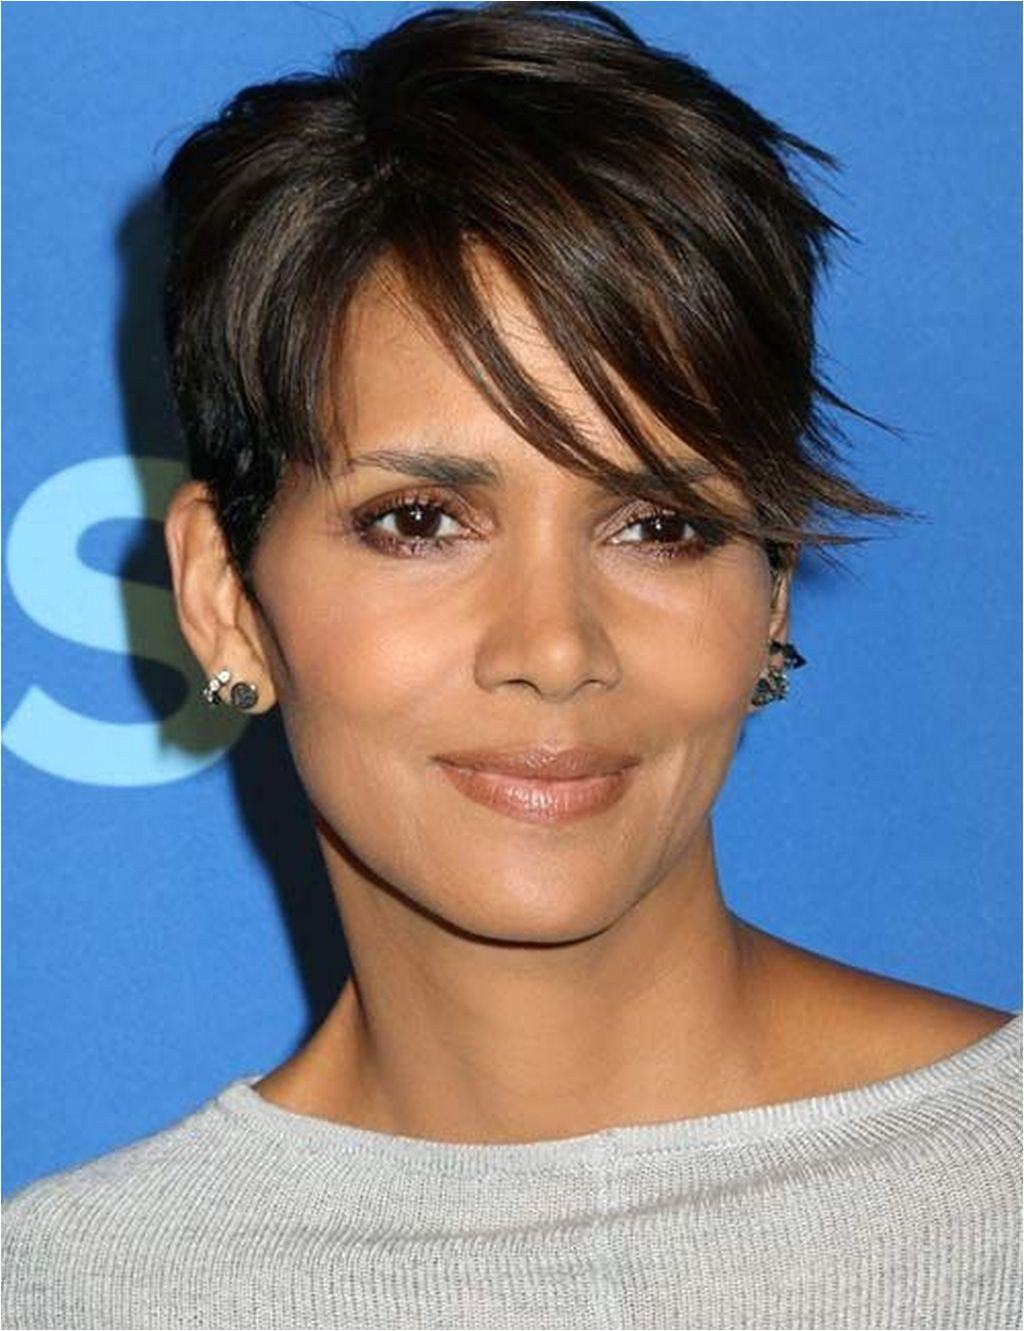 Awesome 39 Brilliant Womens Short Hairstyles With Bangs More at s tilependant